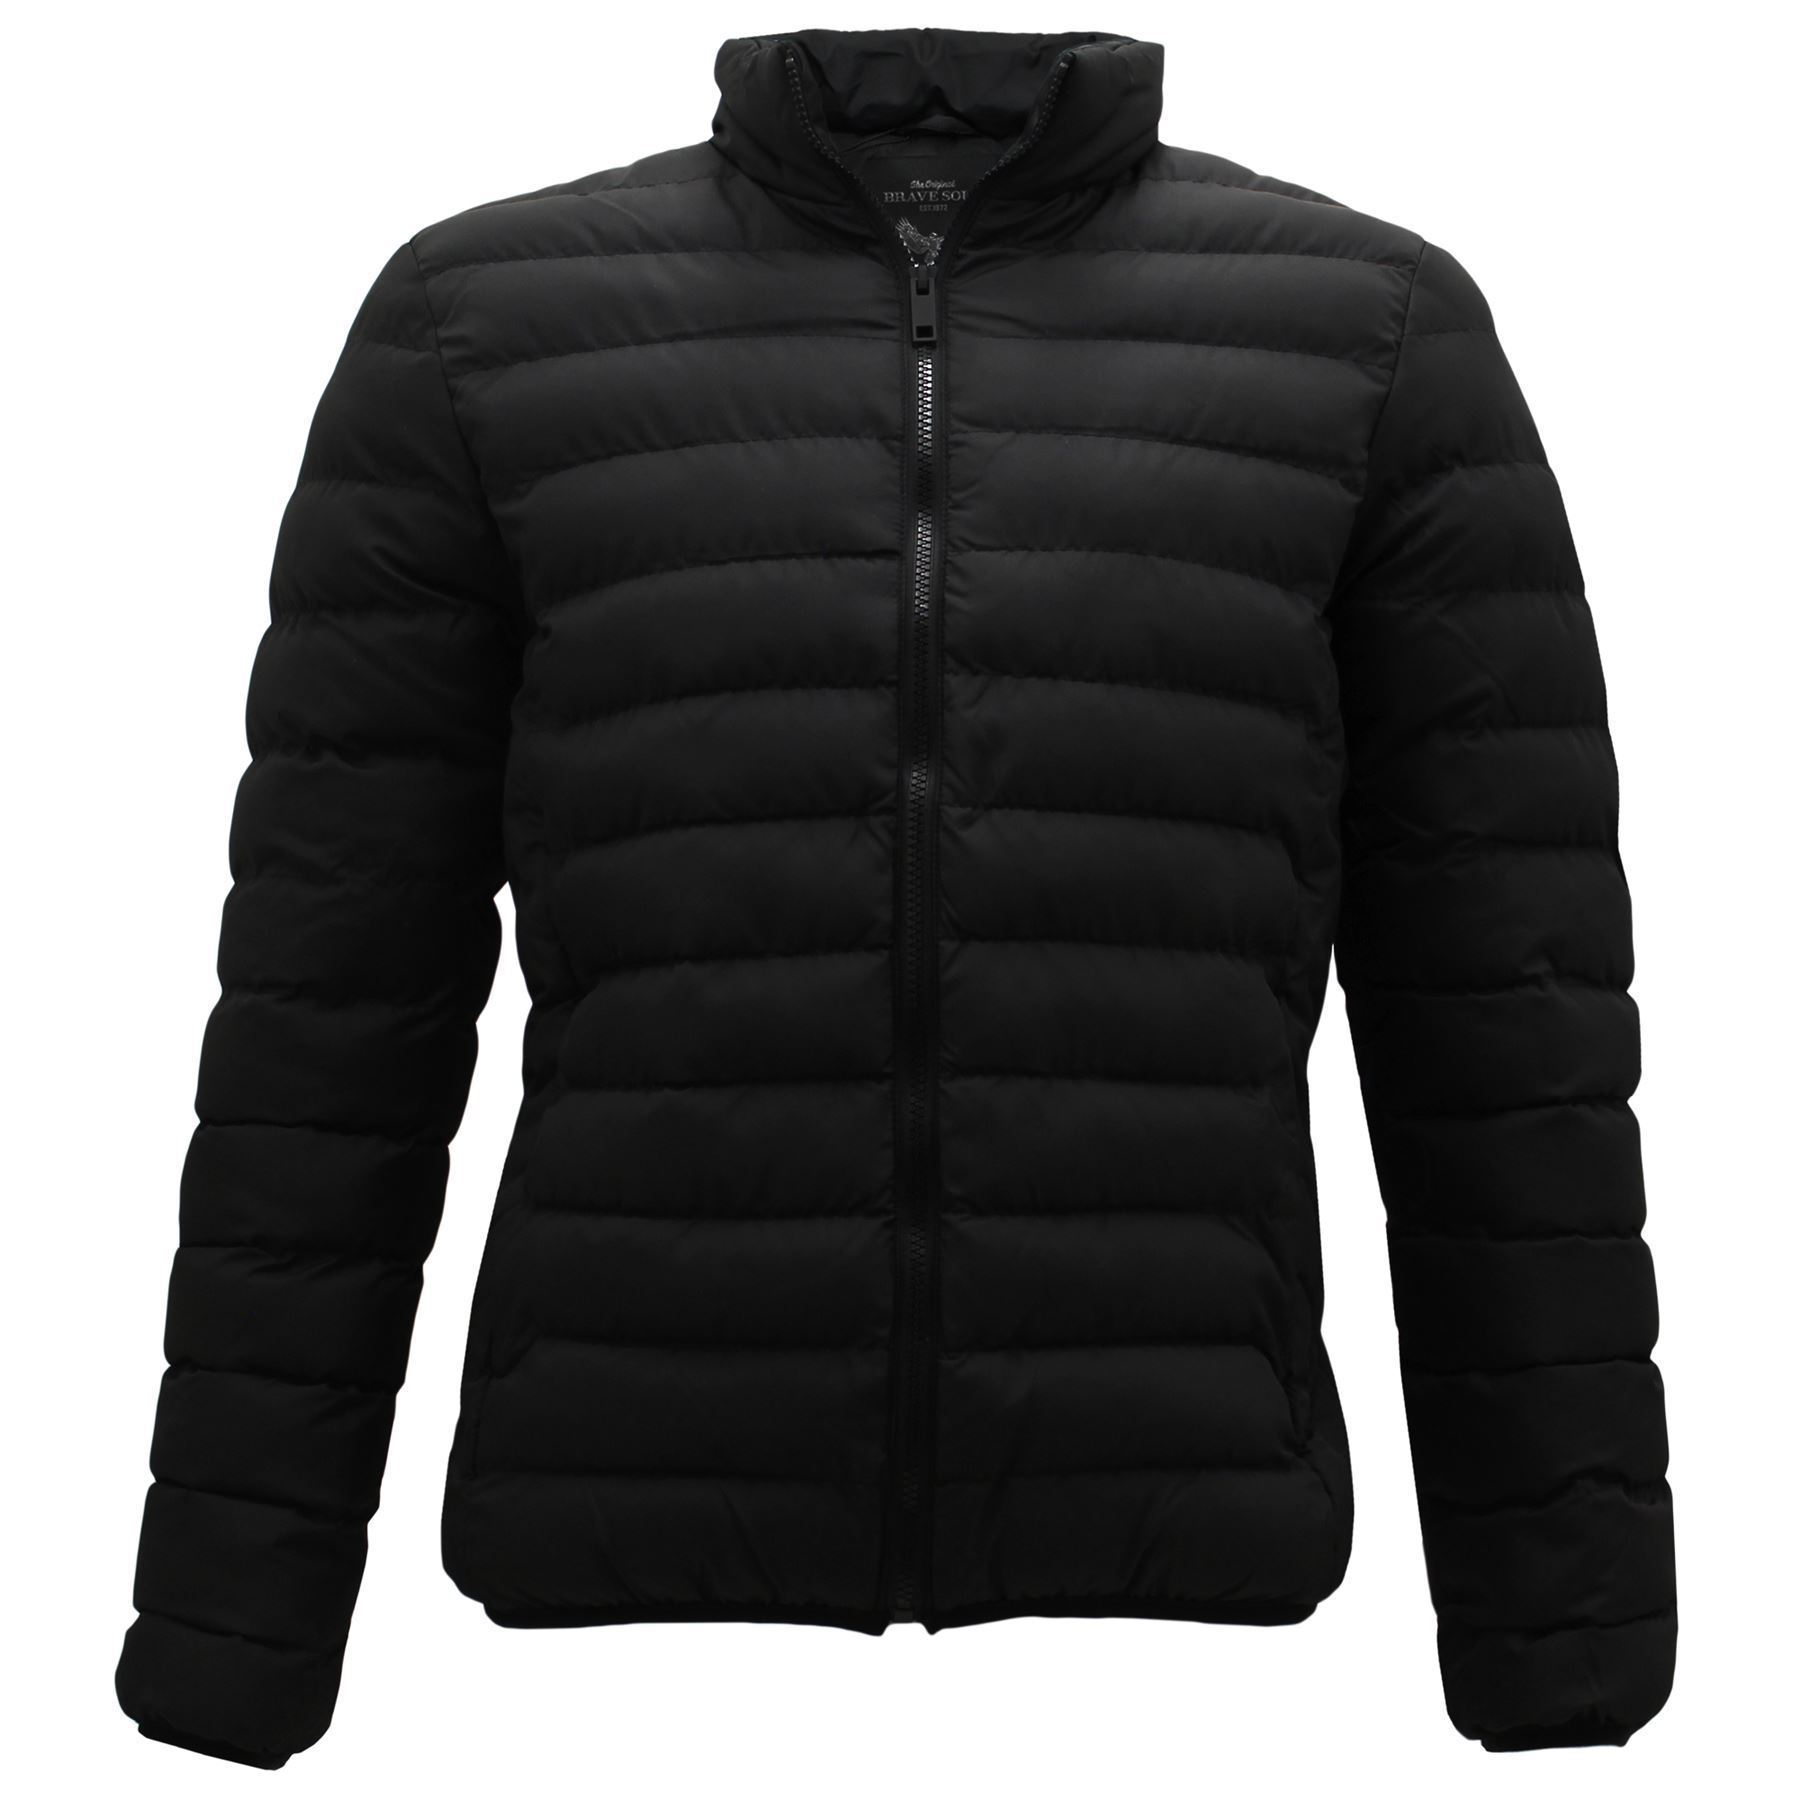 Black Bubble Coat Mens 5 Reviews Here qrqceh.tk shows customers a fashion collection of current black bubble coat qrqceh.tk can find many great items. They all have high quality and reasonable price.